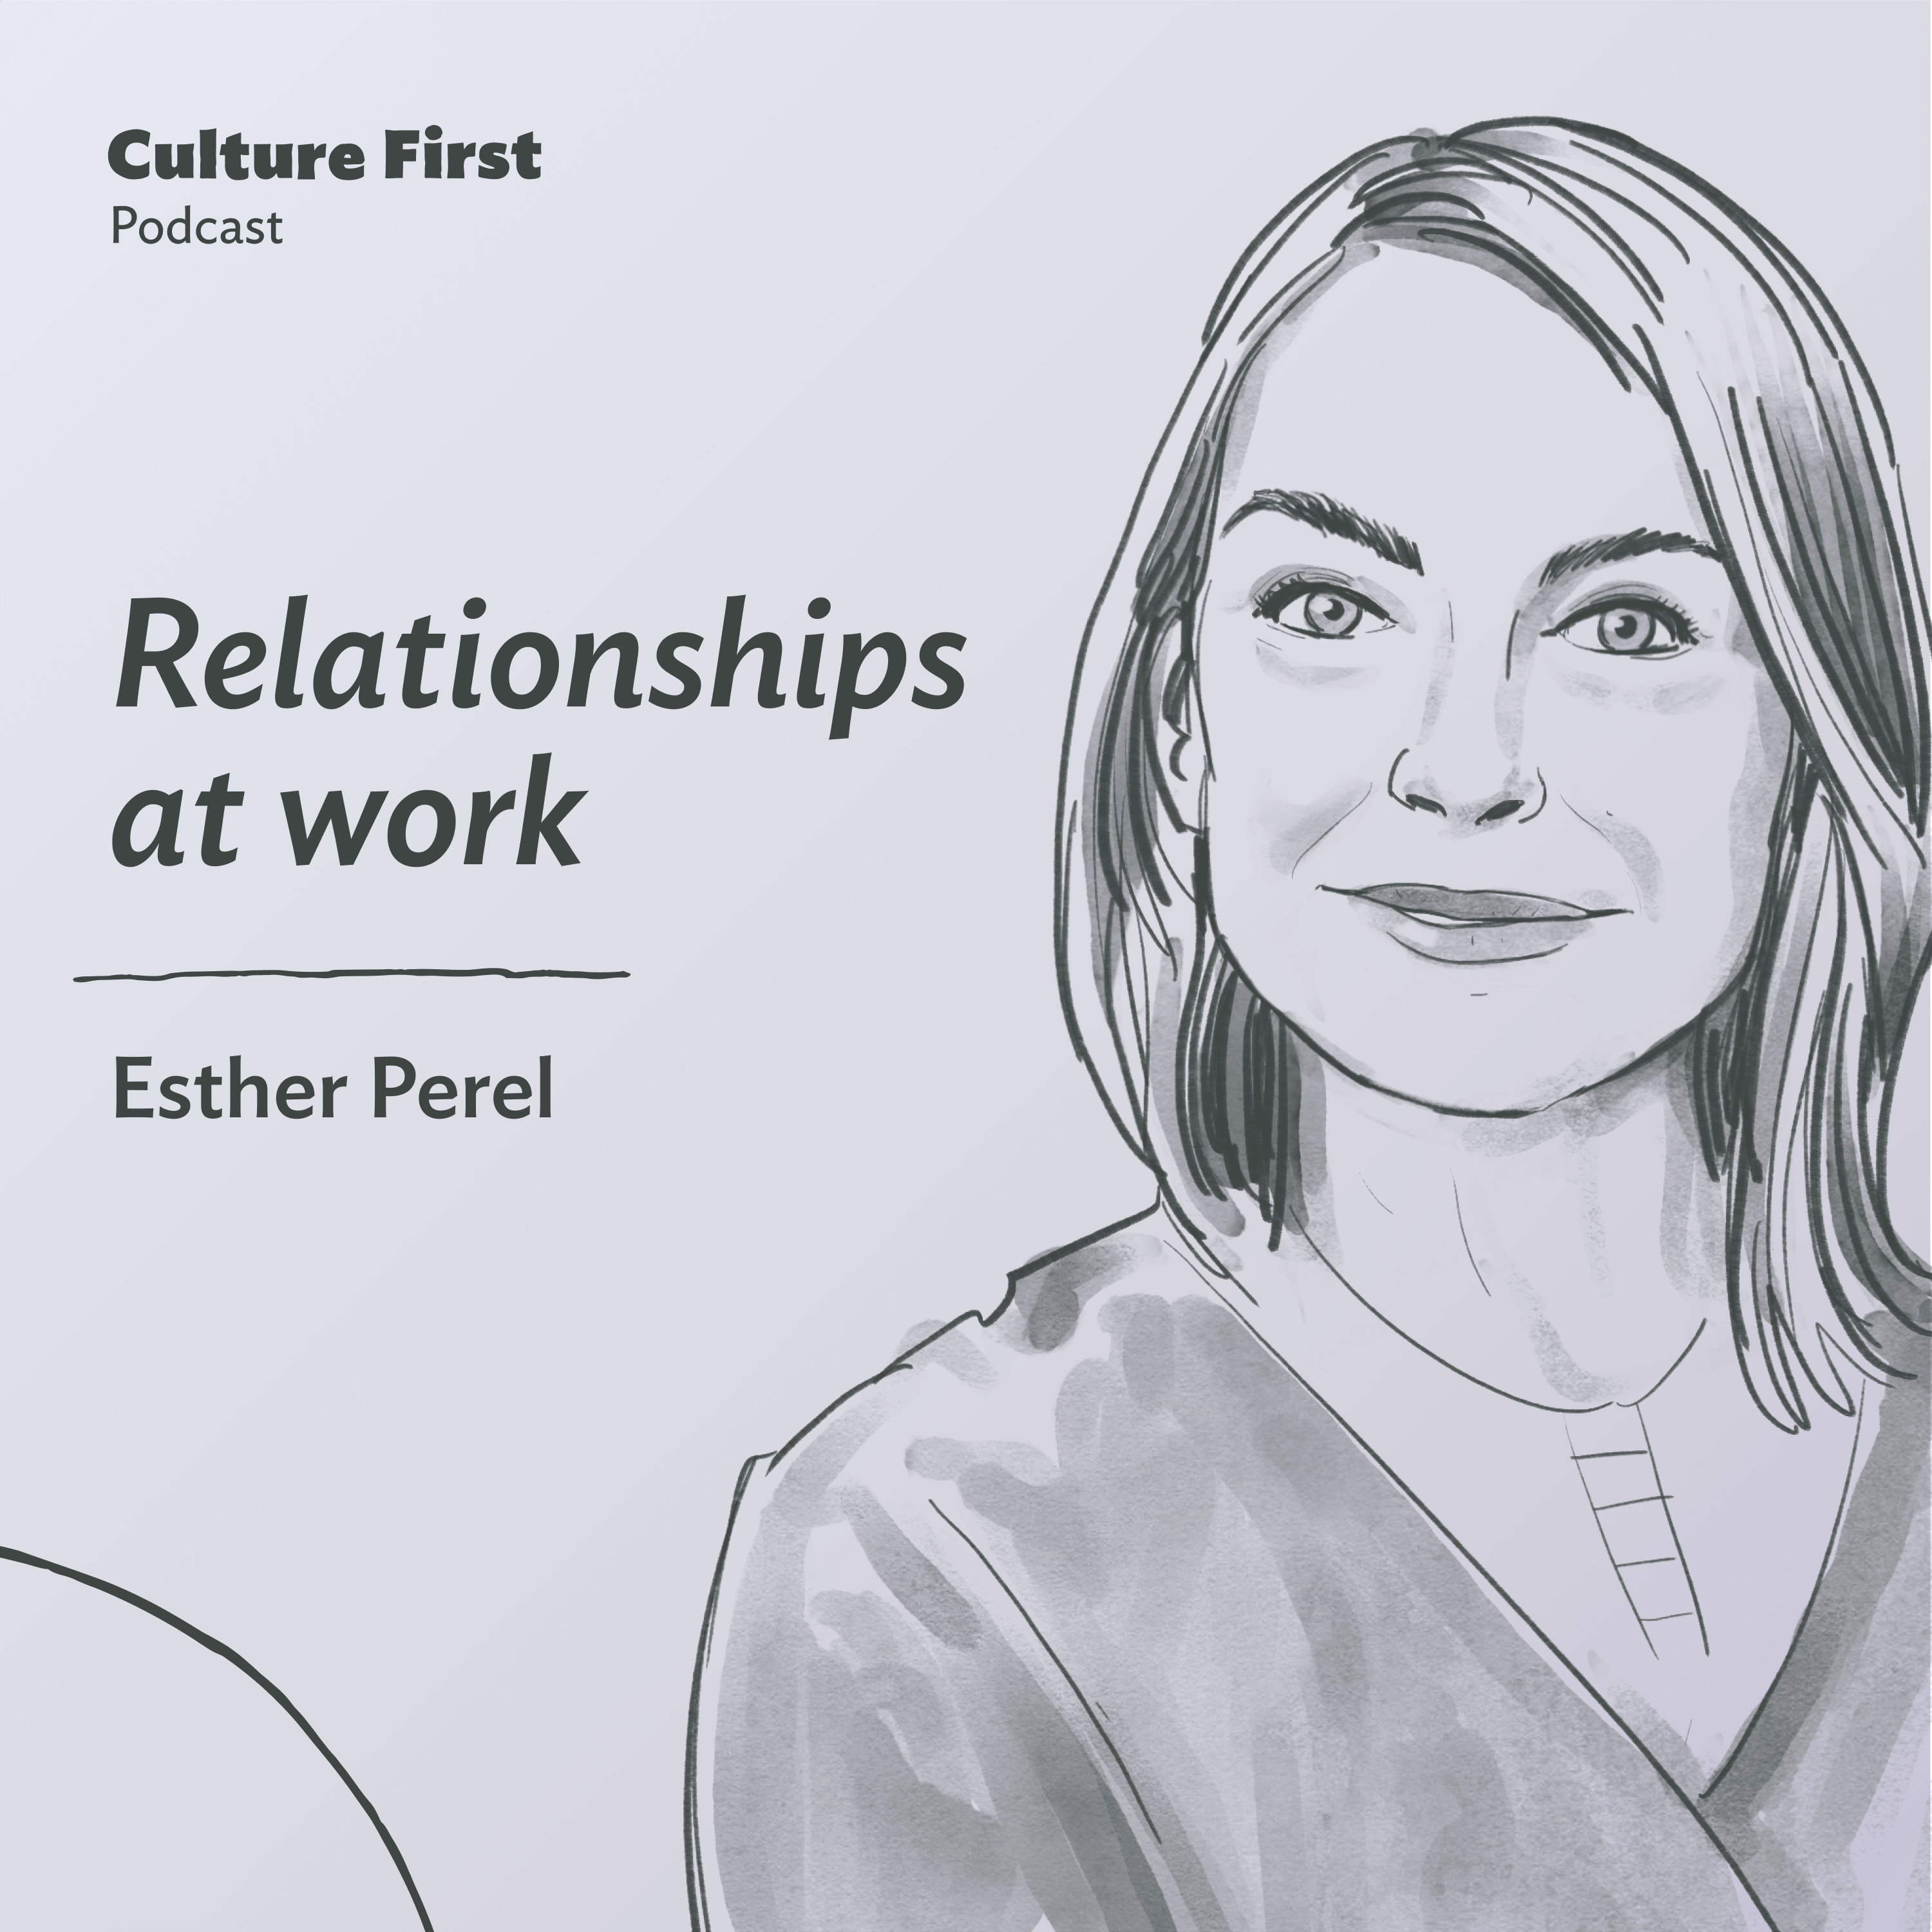 Relationships at work, with Esther Perel